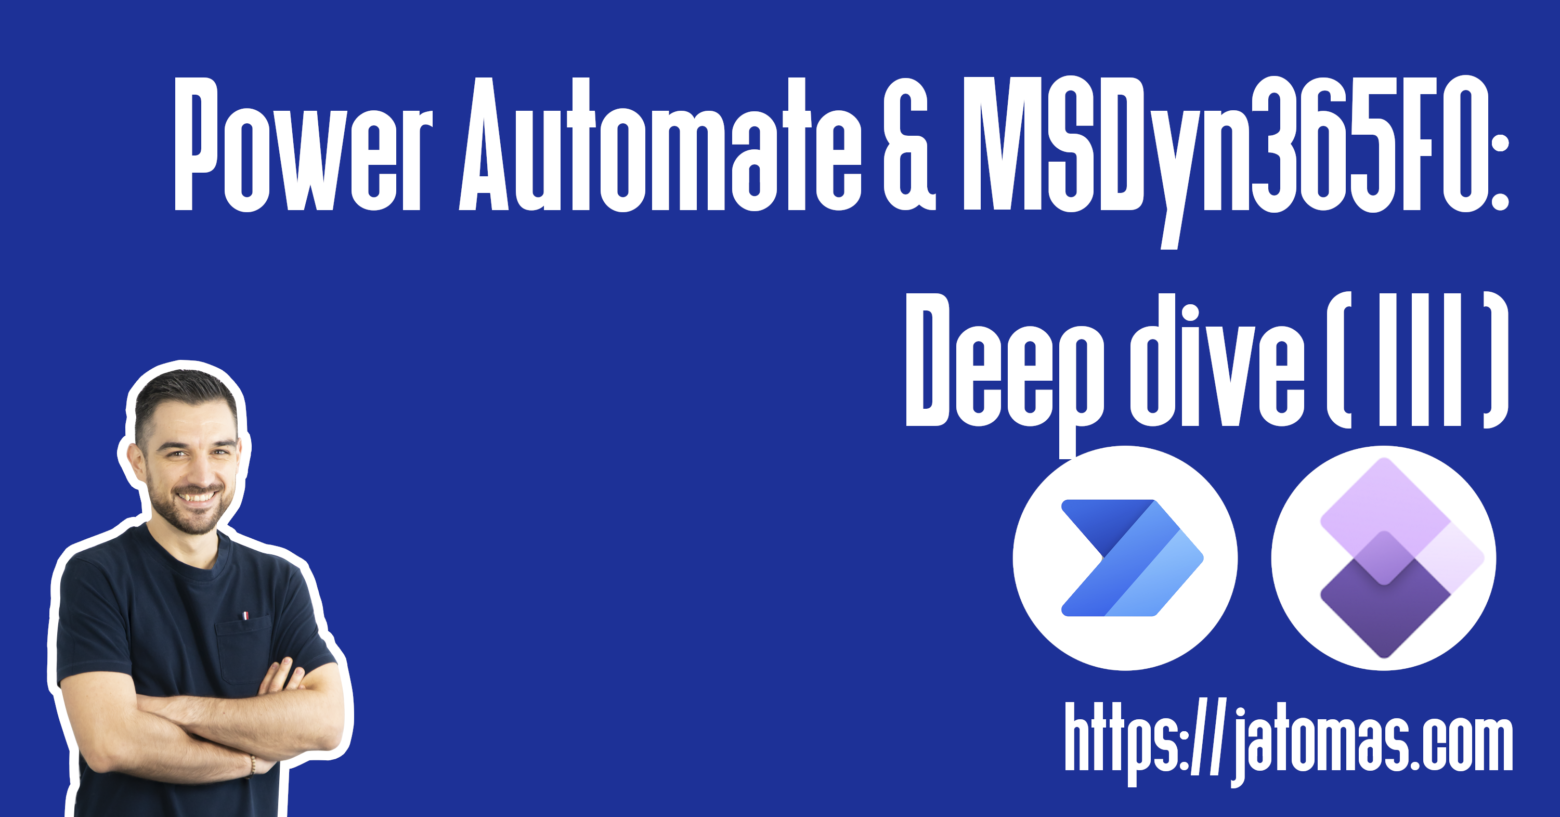 Power Automate & MSDyn365FO: Deep dive (III)